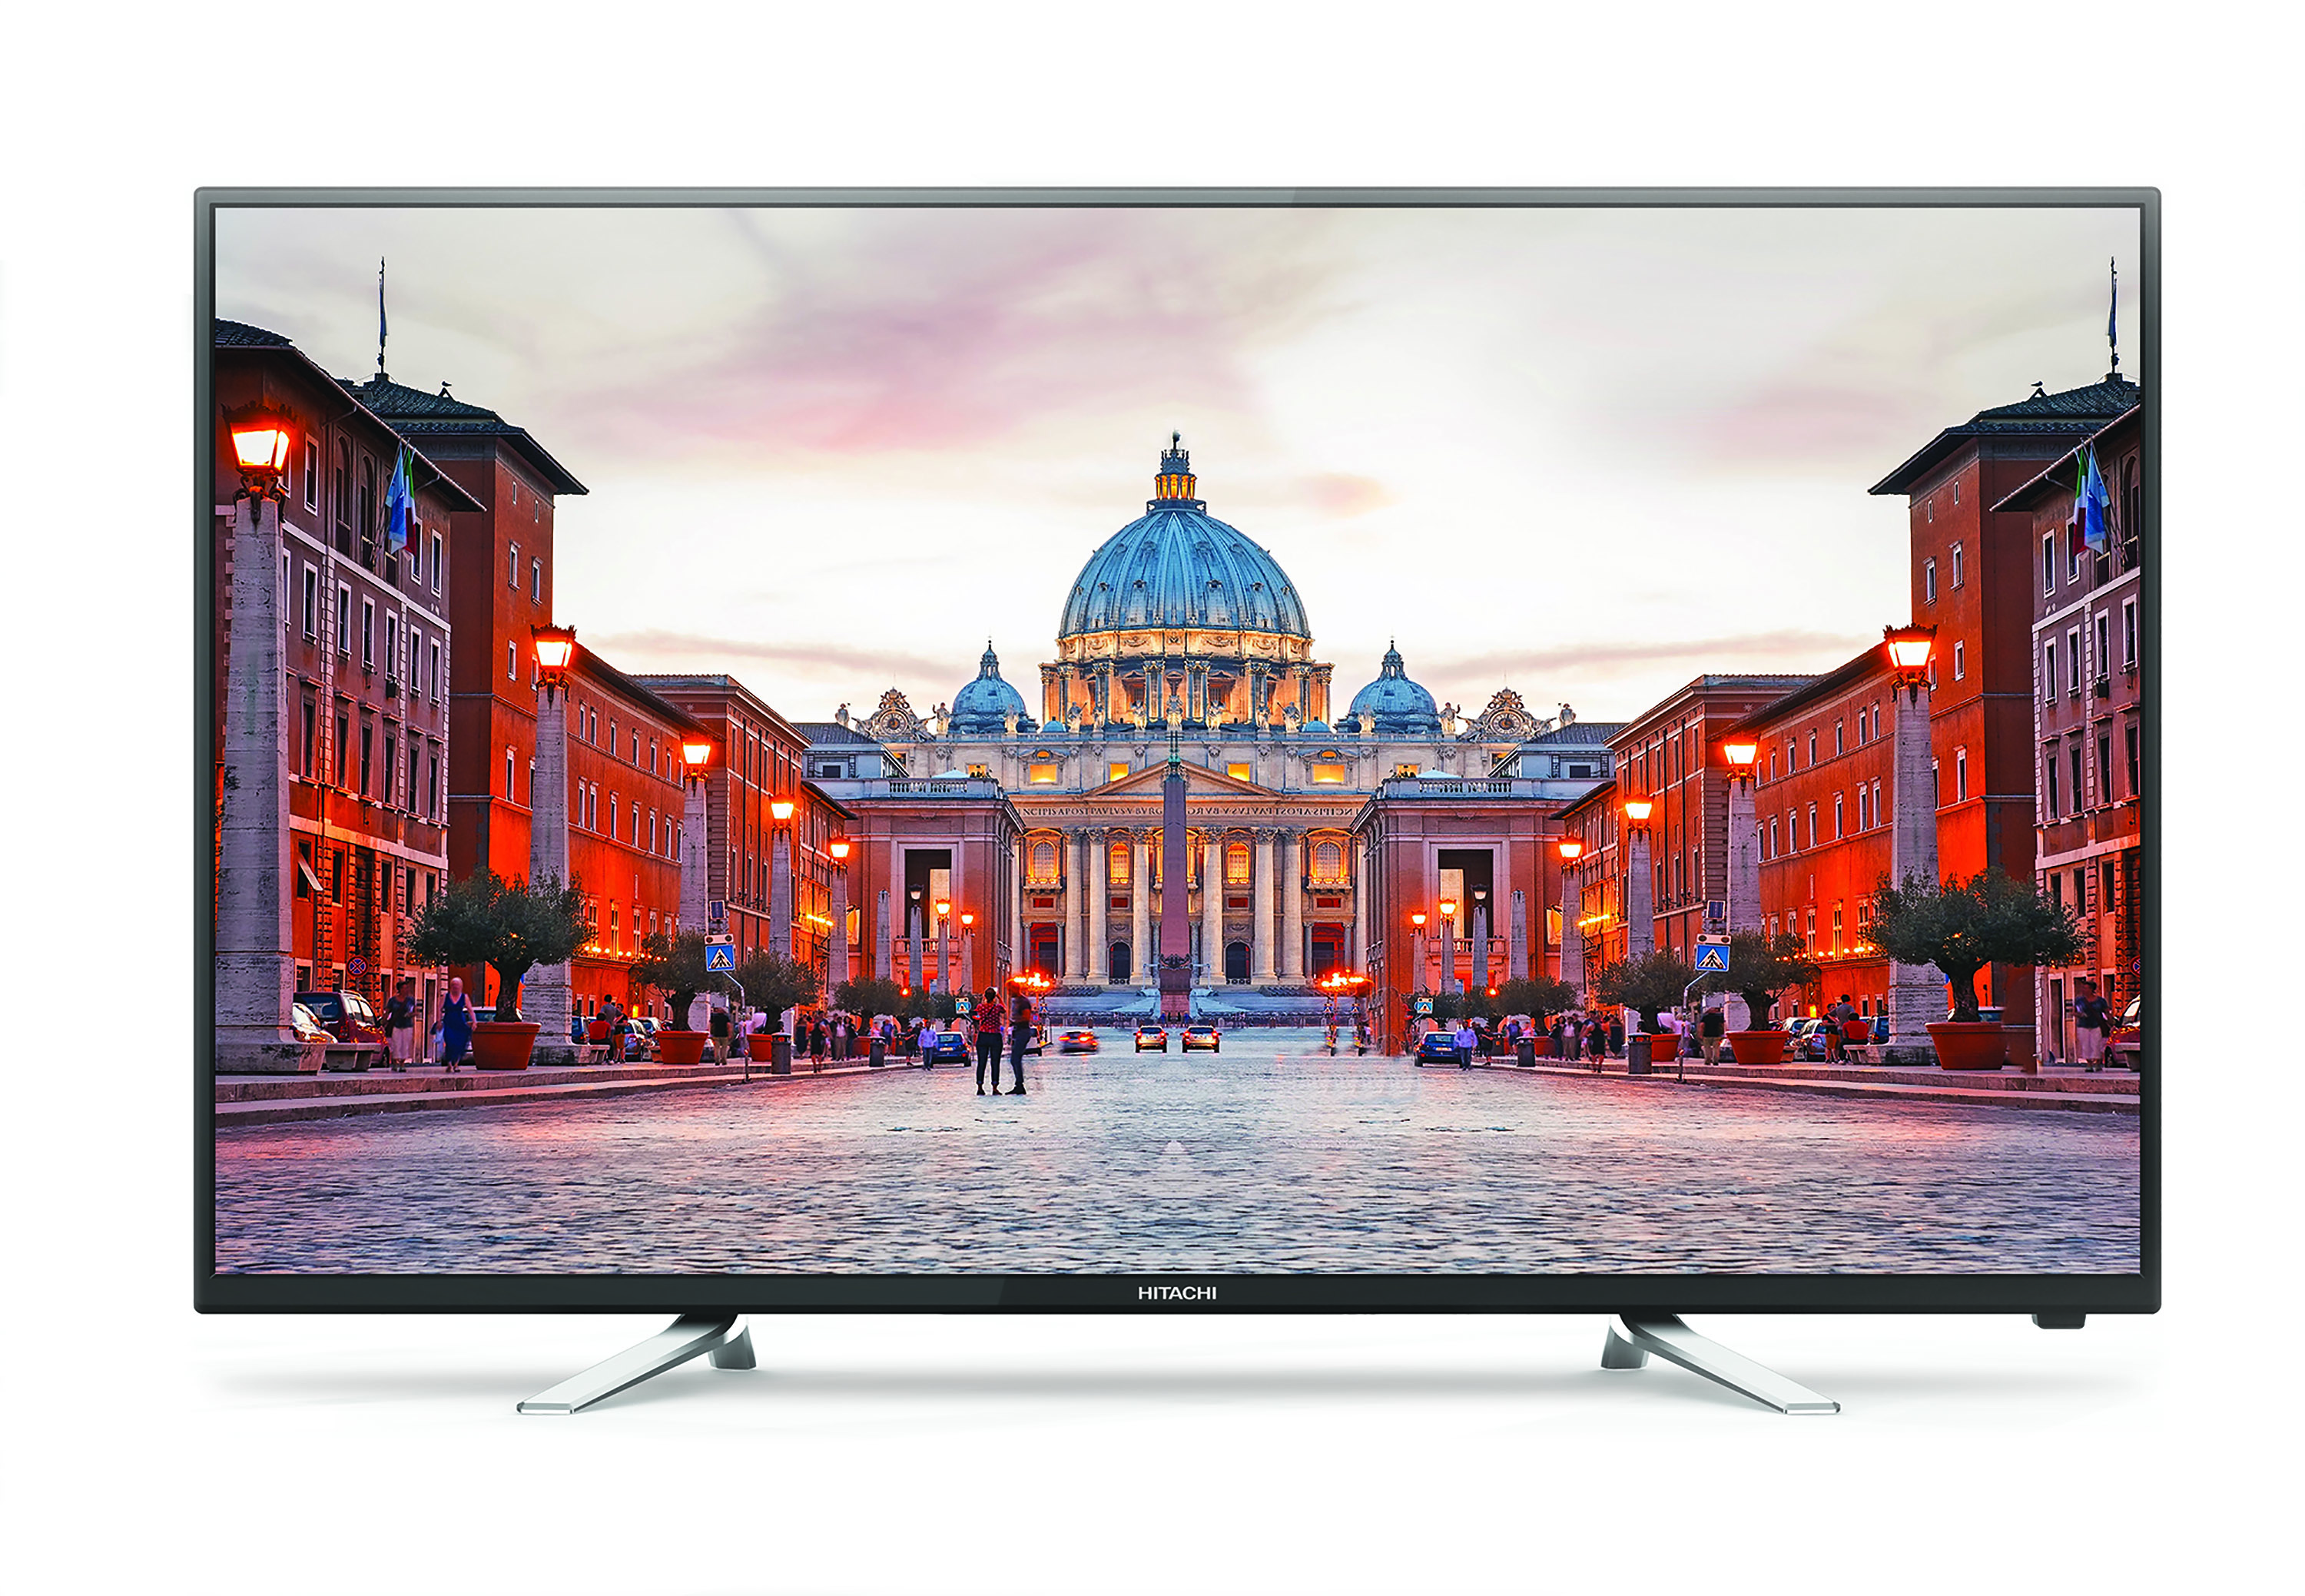 Hitachi 55C60 55-in Class 4K Ultra HD TV